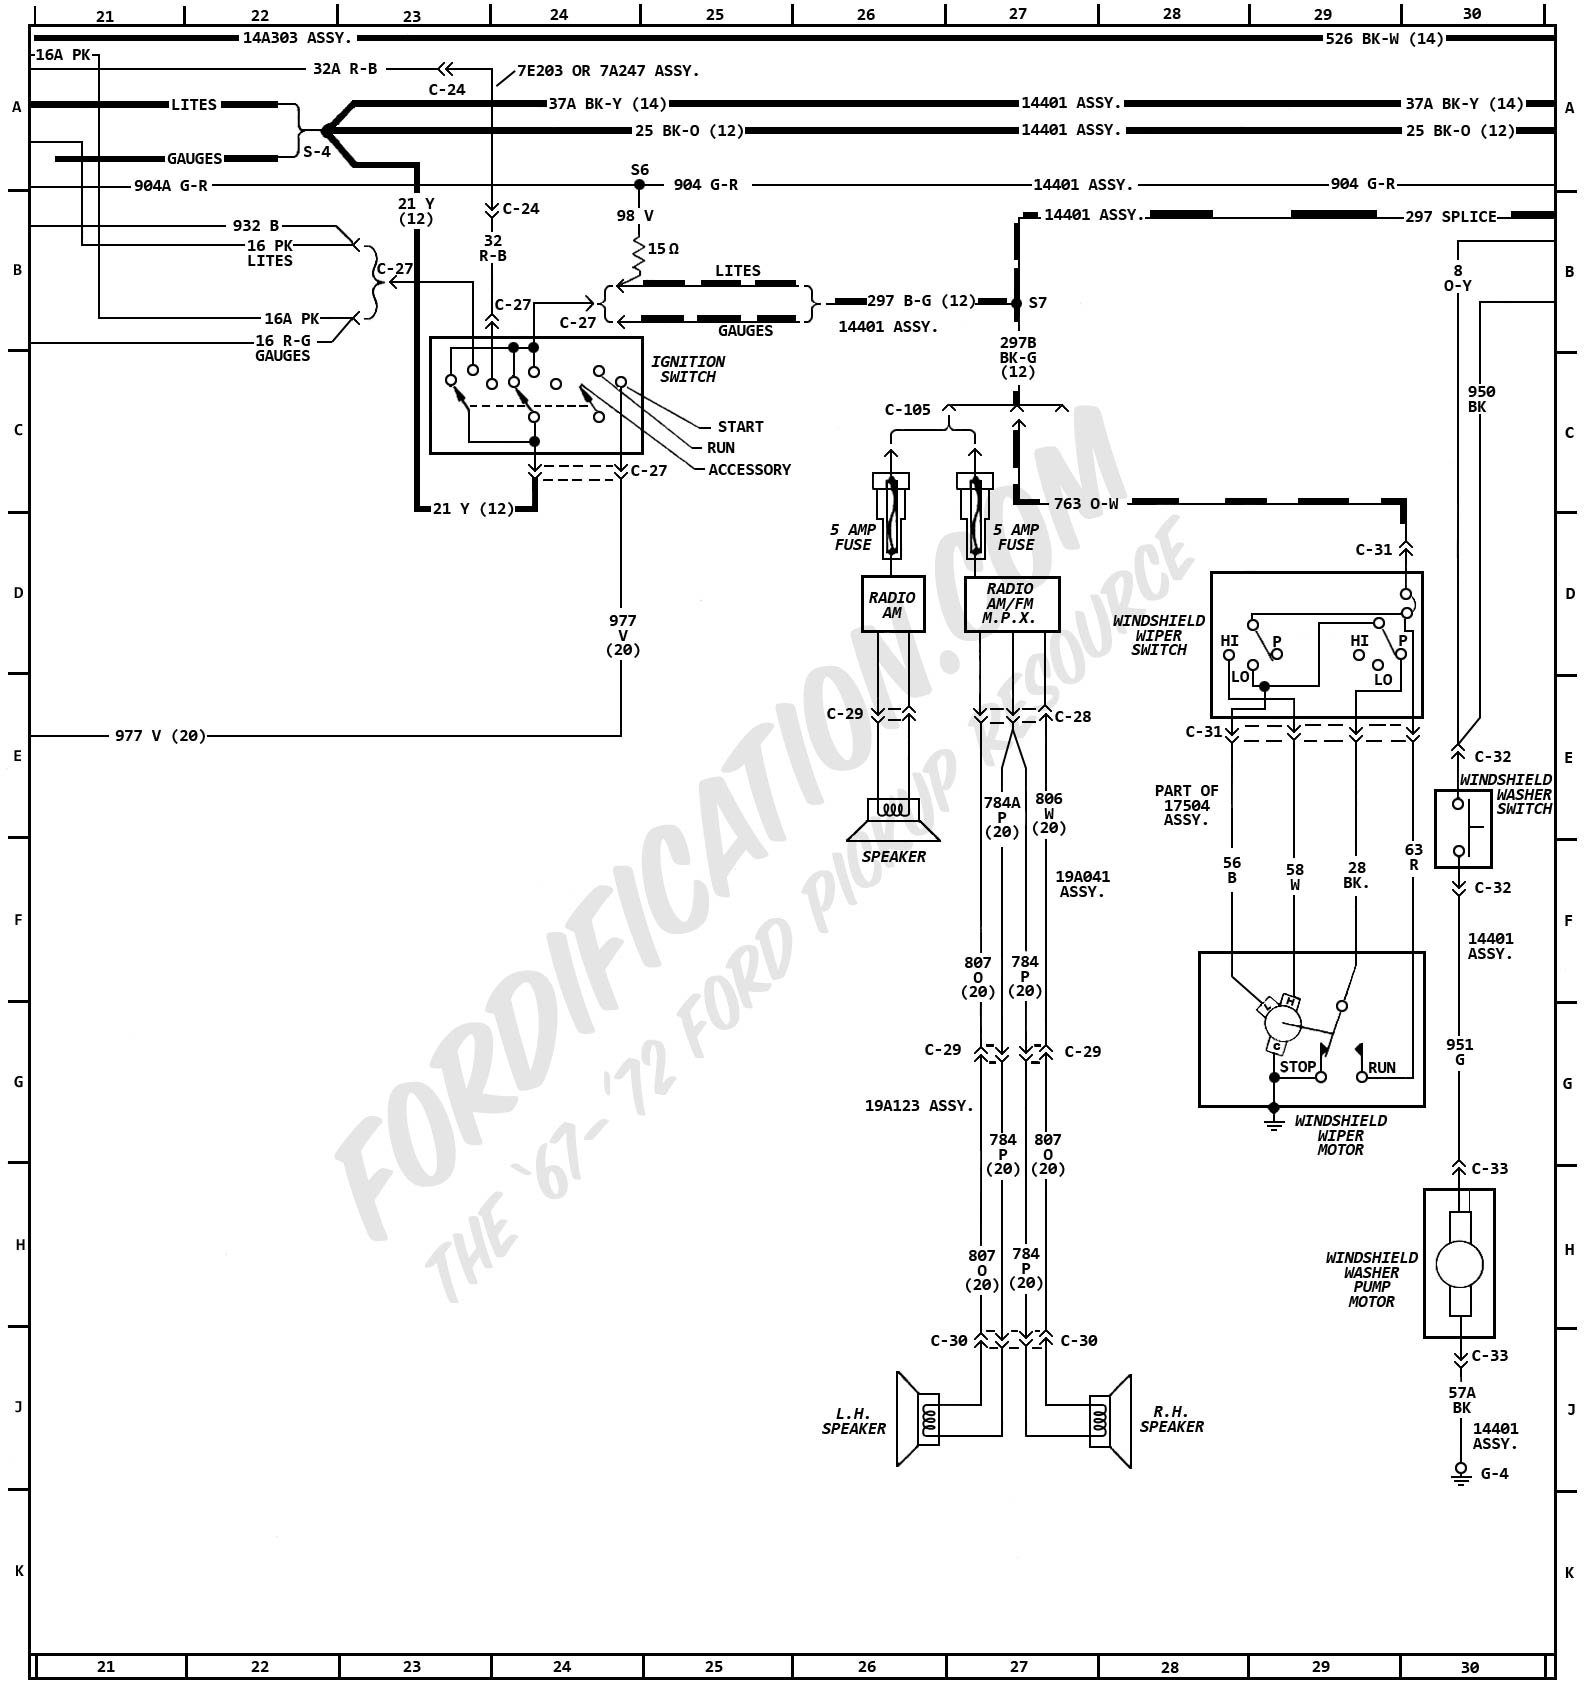 1962 f100 wiring diagram 1972 ford truck wiring diagrams - fordification.com